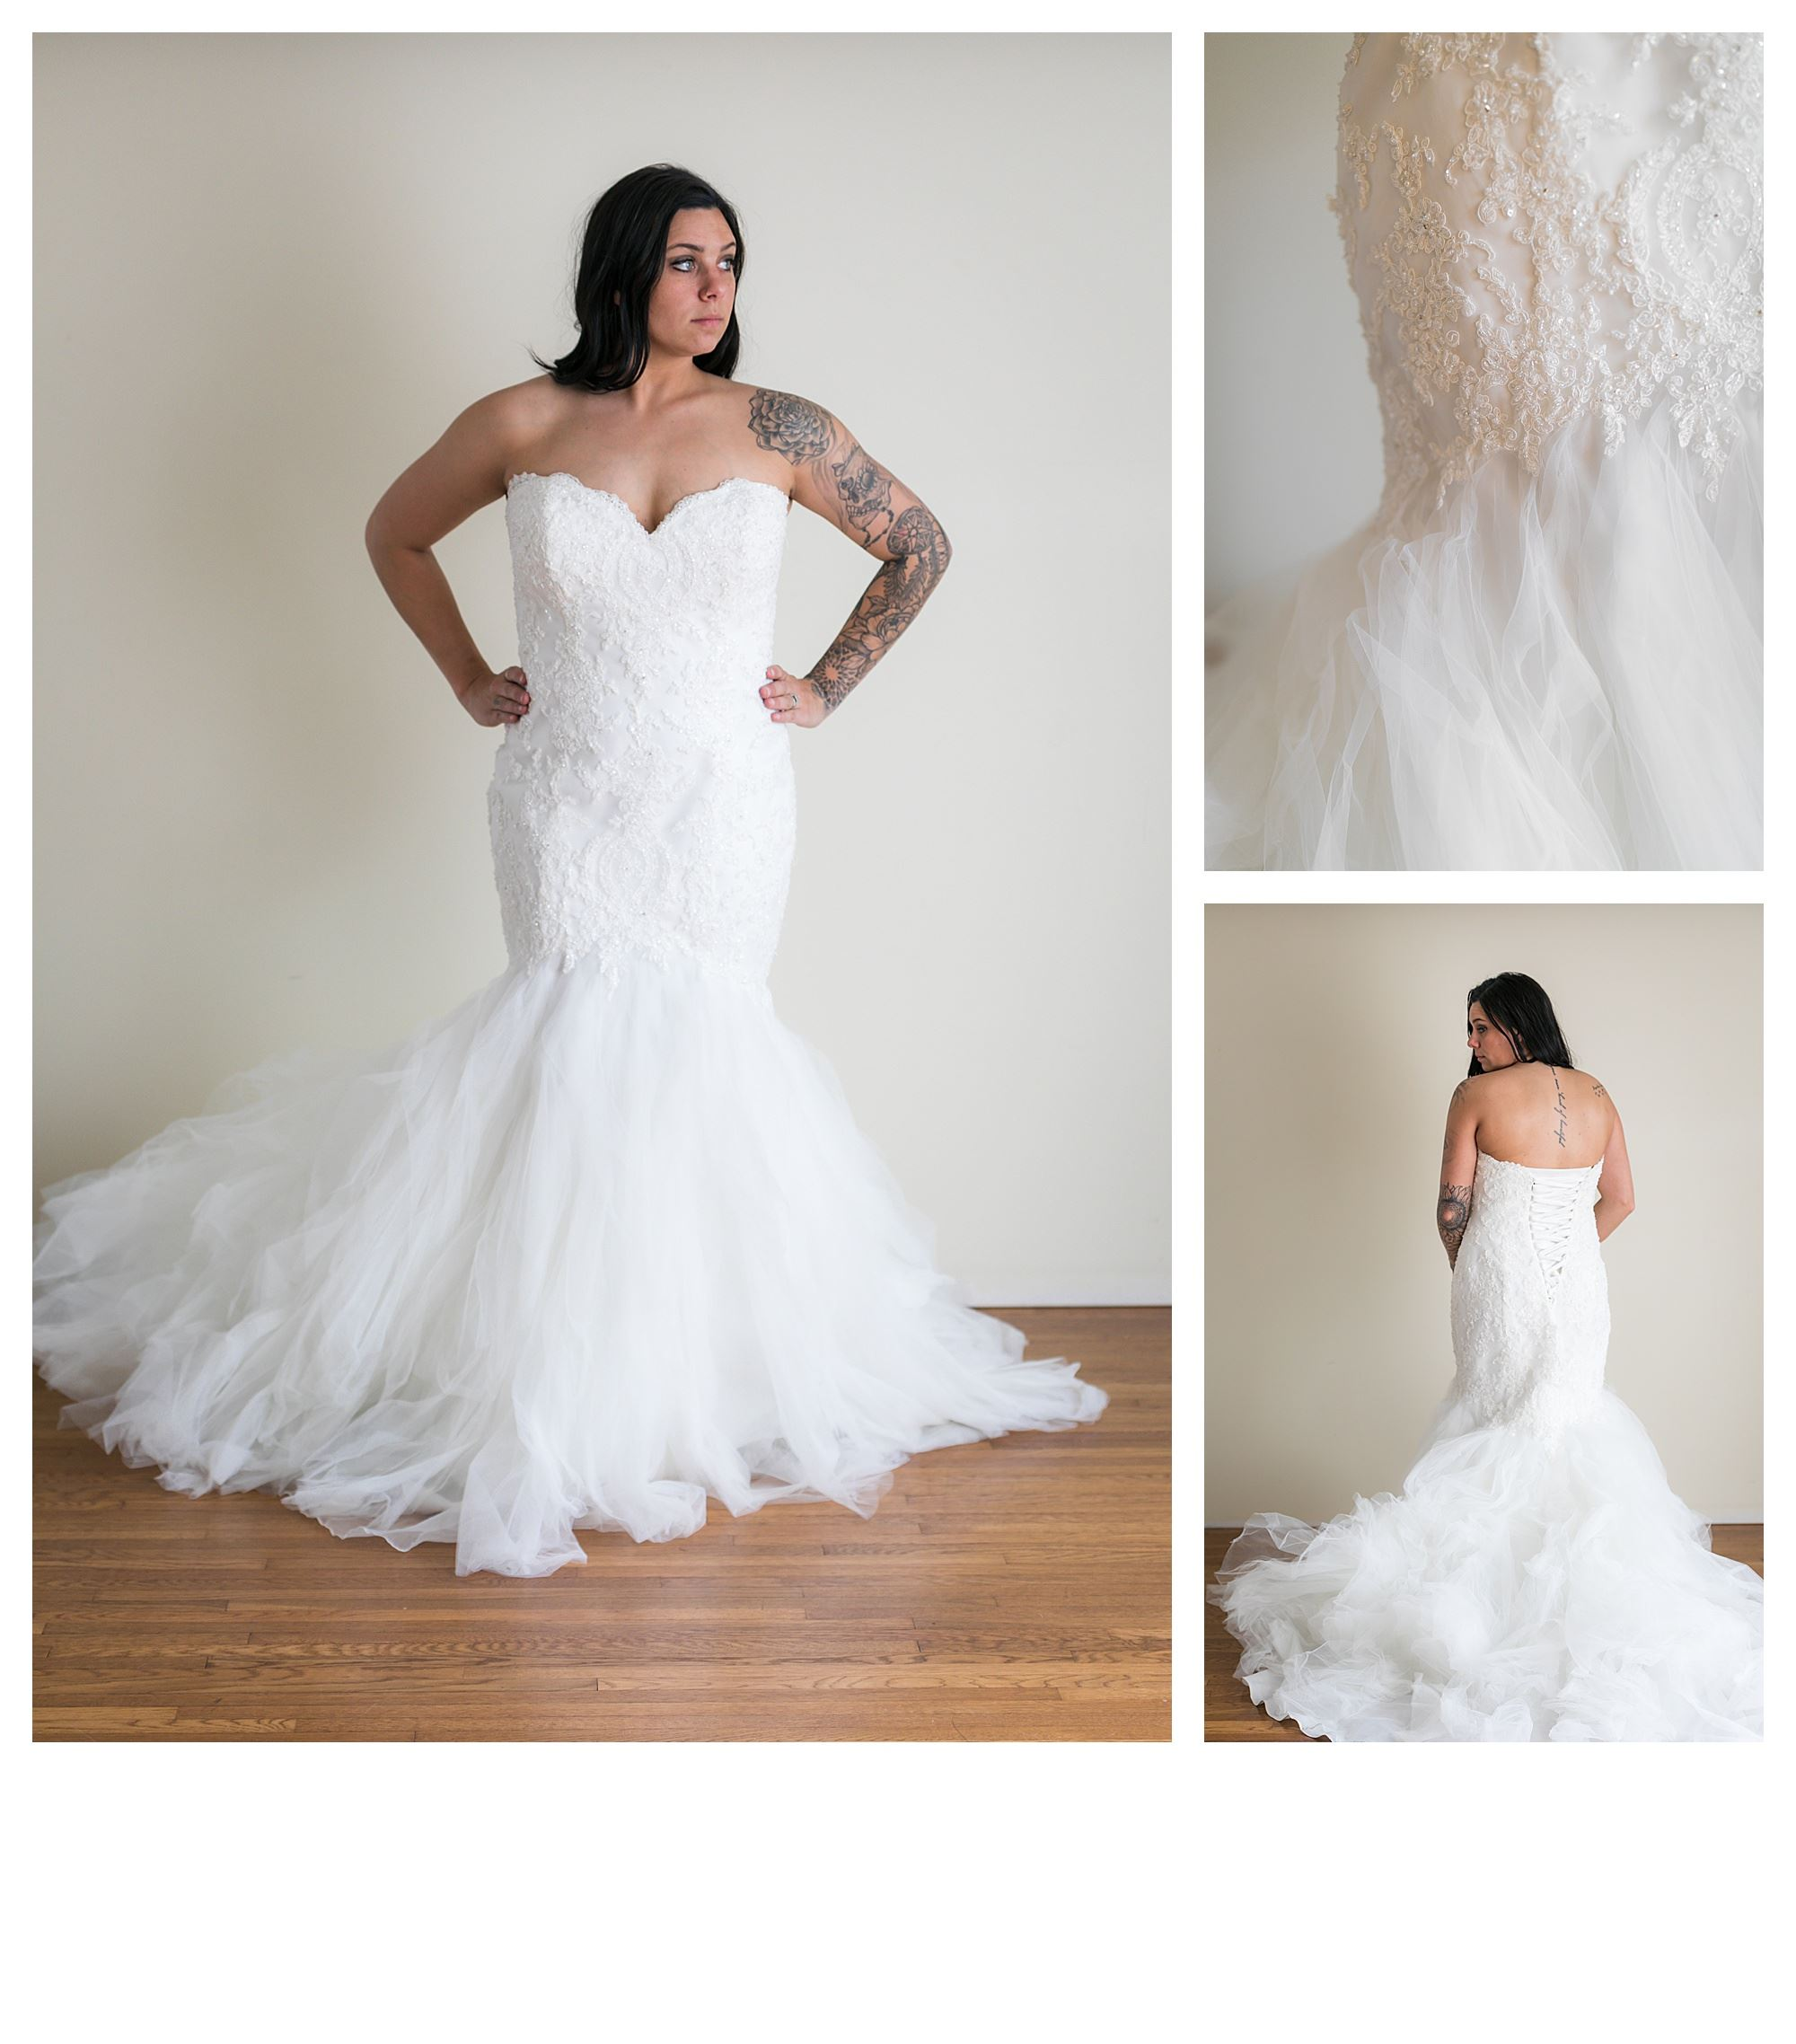 Shayla - Size 18 - Ivory - Originally priced $1799 - Sample box price $1199